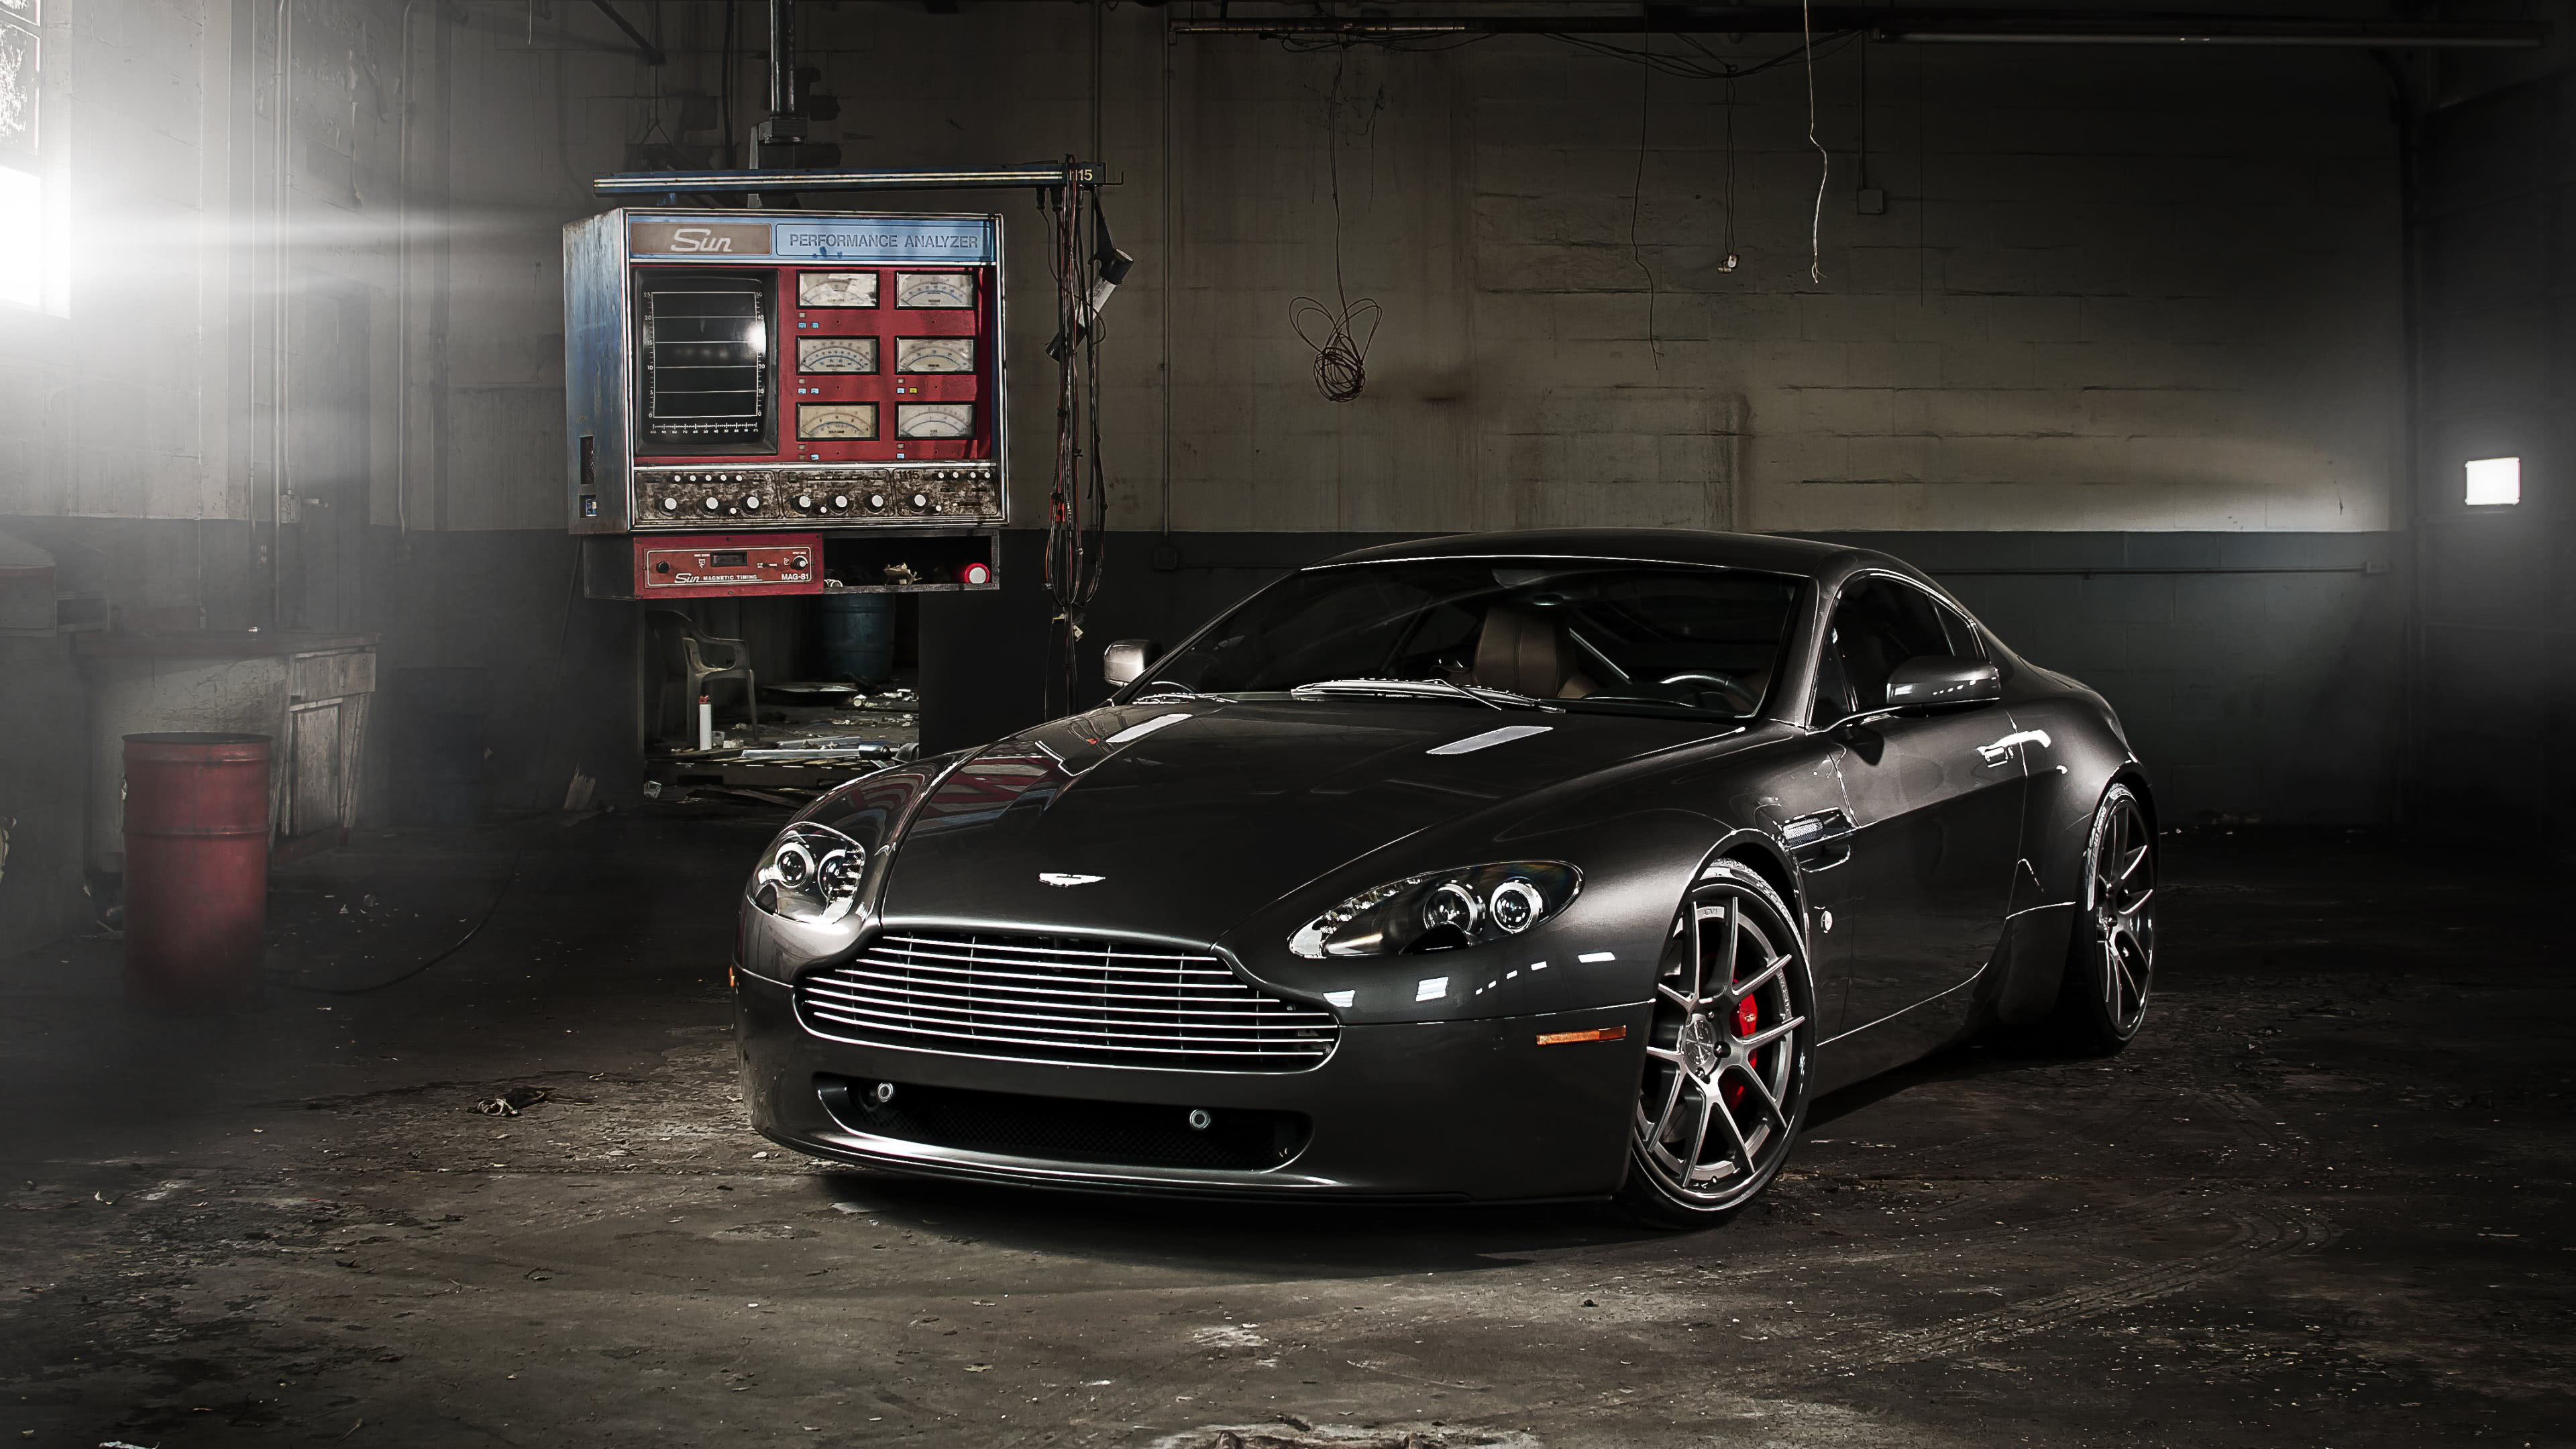 black aston martin uhd 4k wallpaper